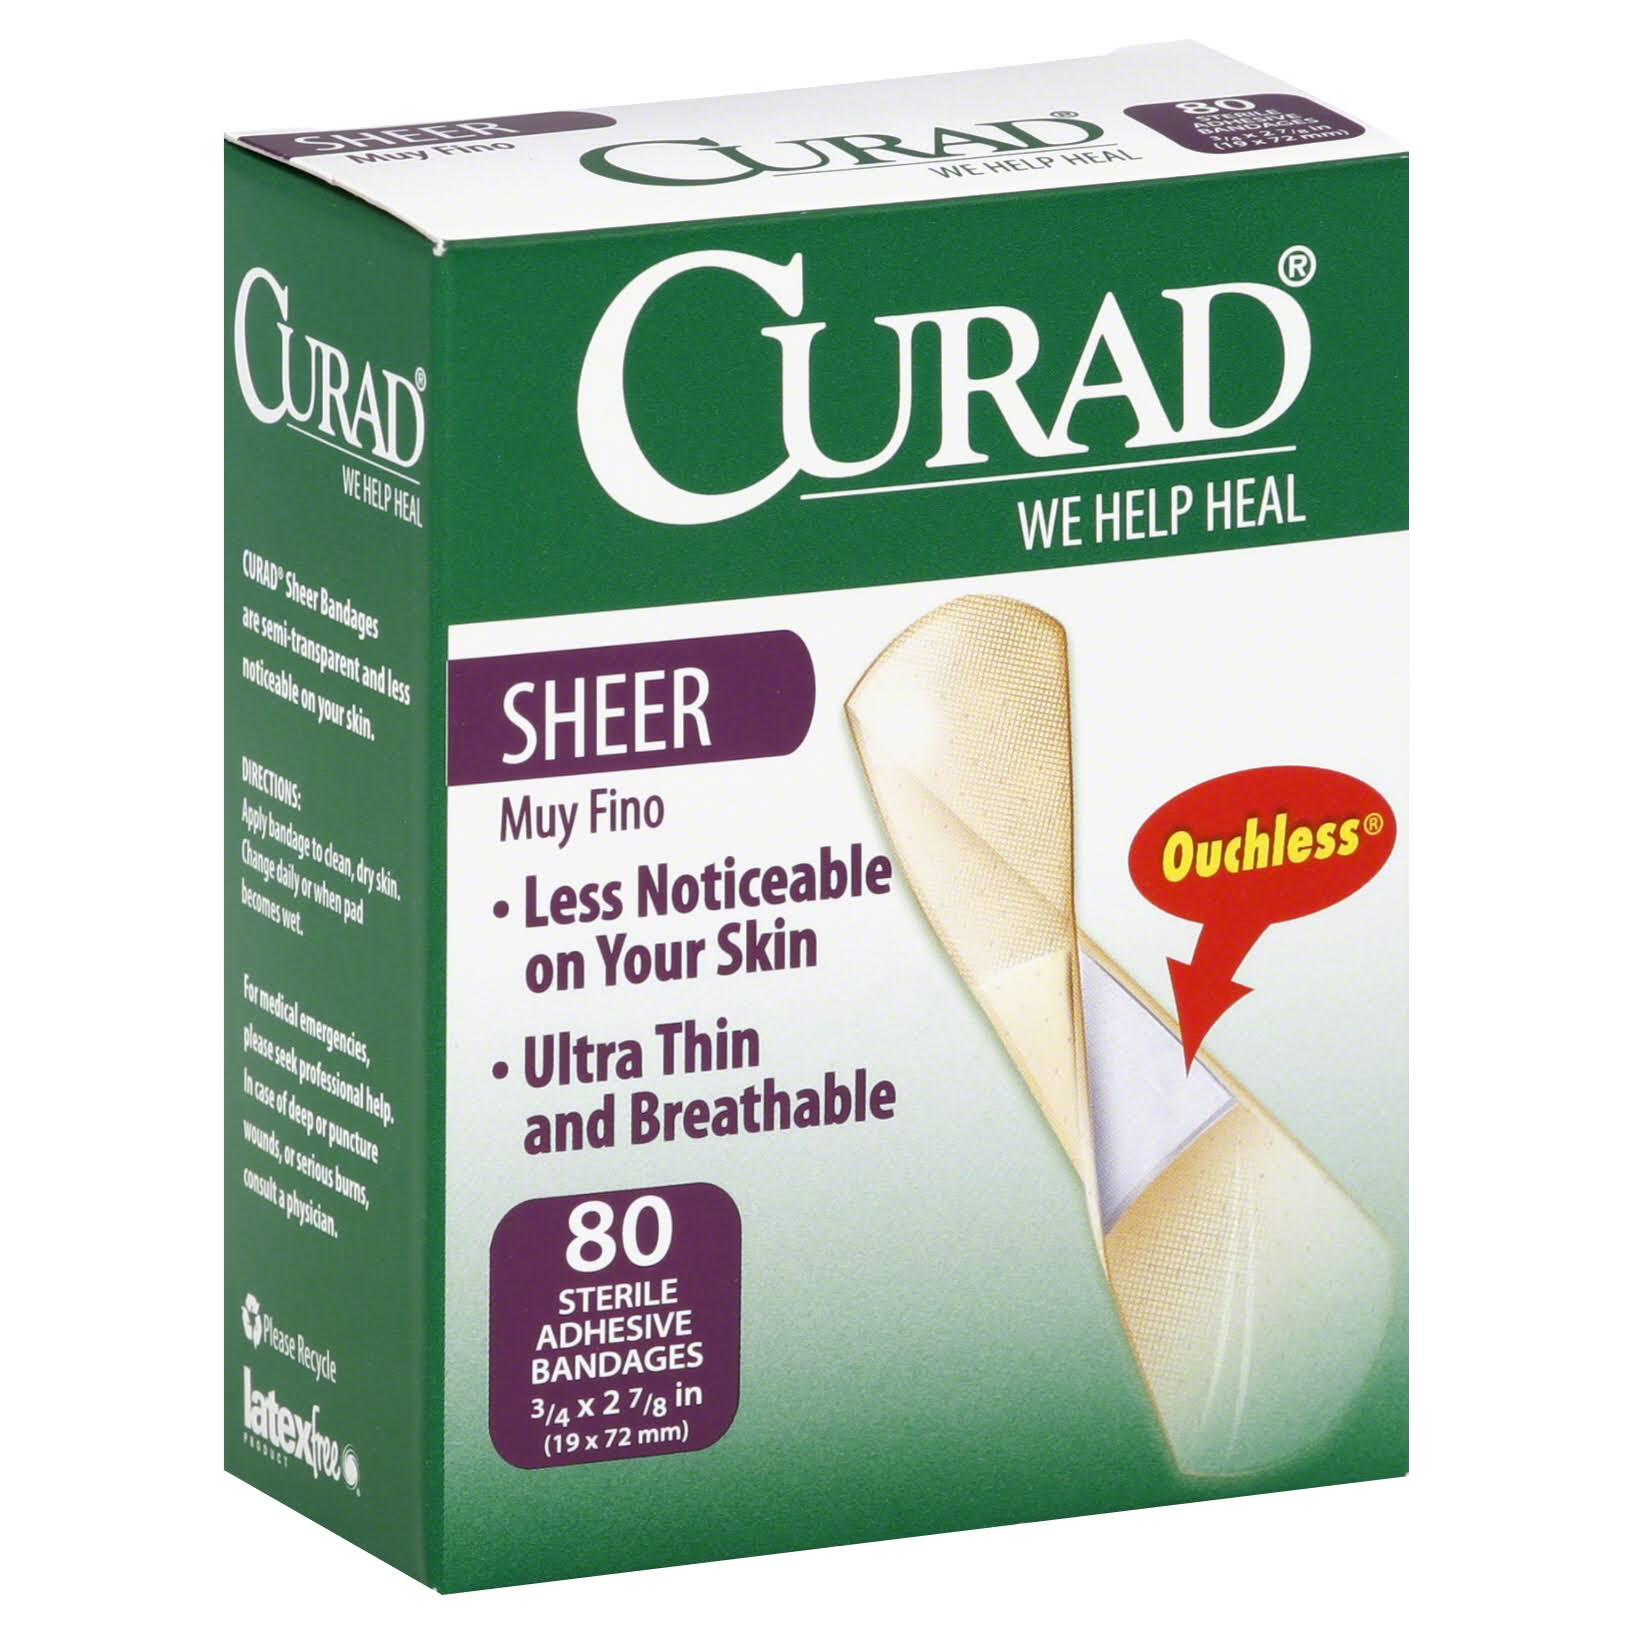 Curad Bandages, Adhesive, Sheer - 80 bandages